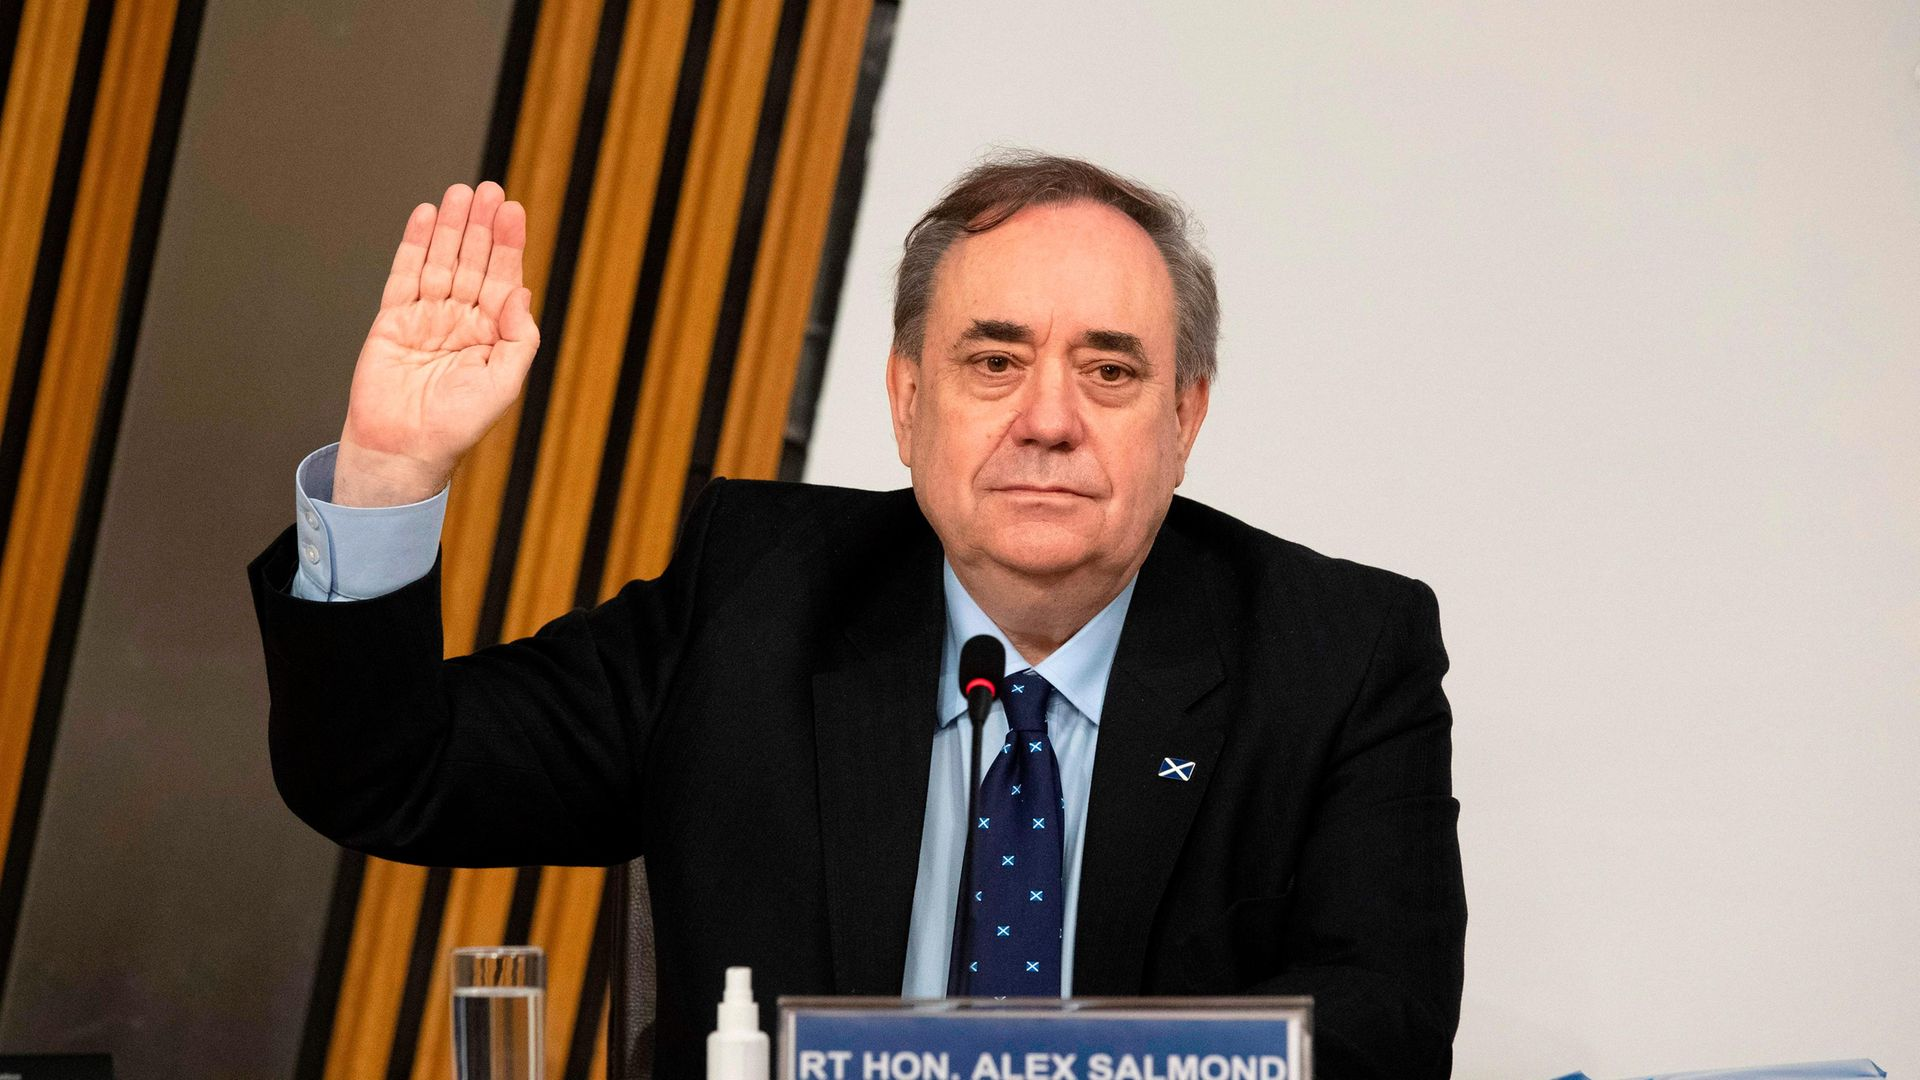 Former SNP leader and former first minister of Scotland Alex Salmond is sworn in before giving his evidence to the Holyrood committee investigating the handling of harassment allegations against him - Credit: POOL/AFP via Getty Images